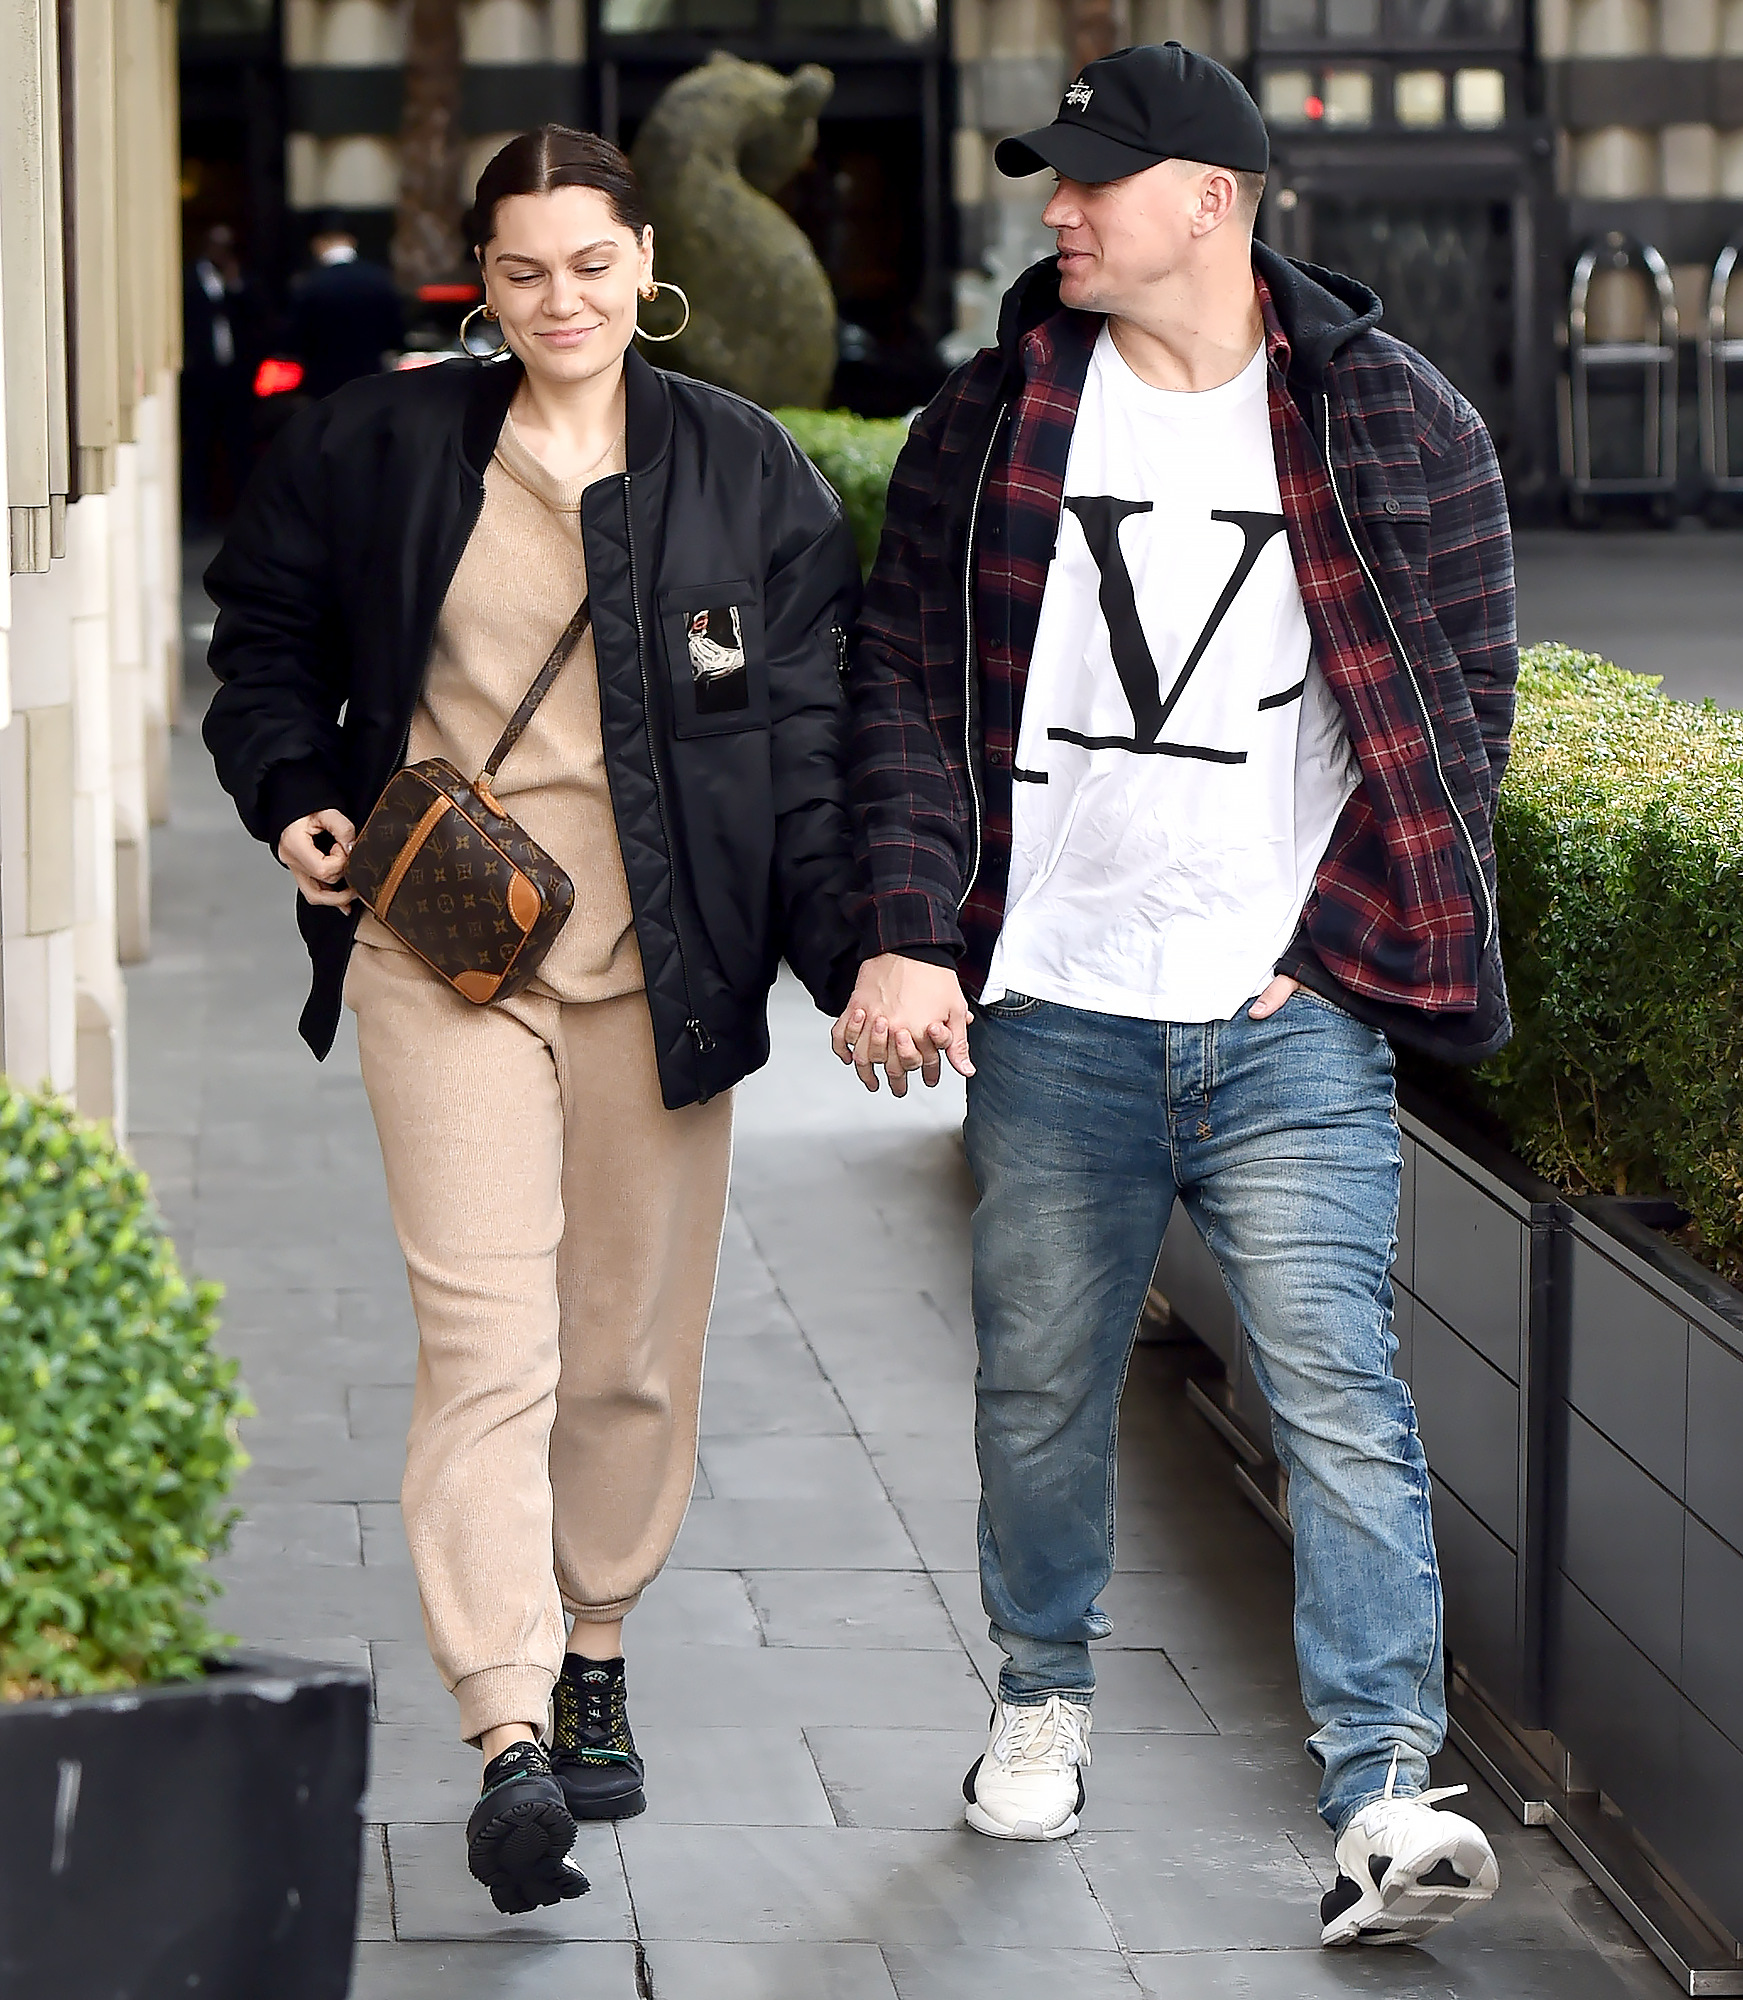 Jessie J Writes About Pain and Healing After Channing Tatum Split 1